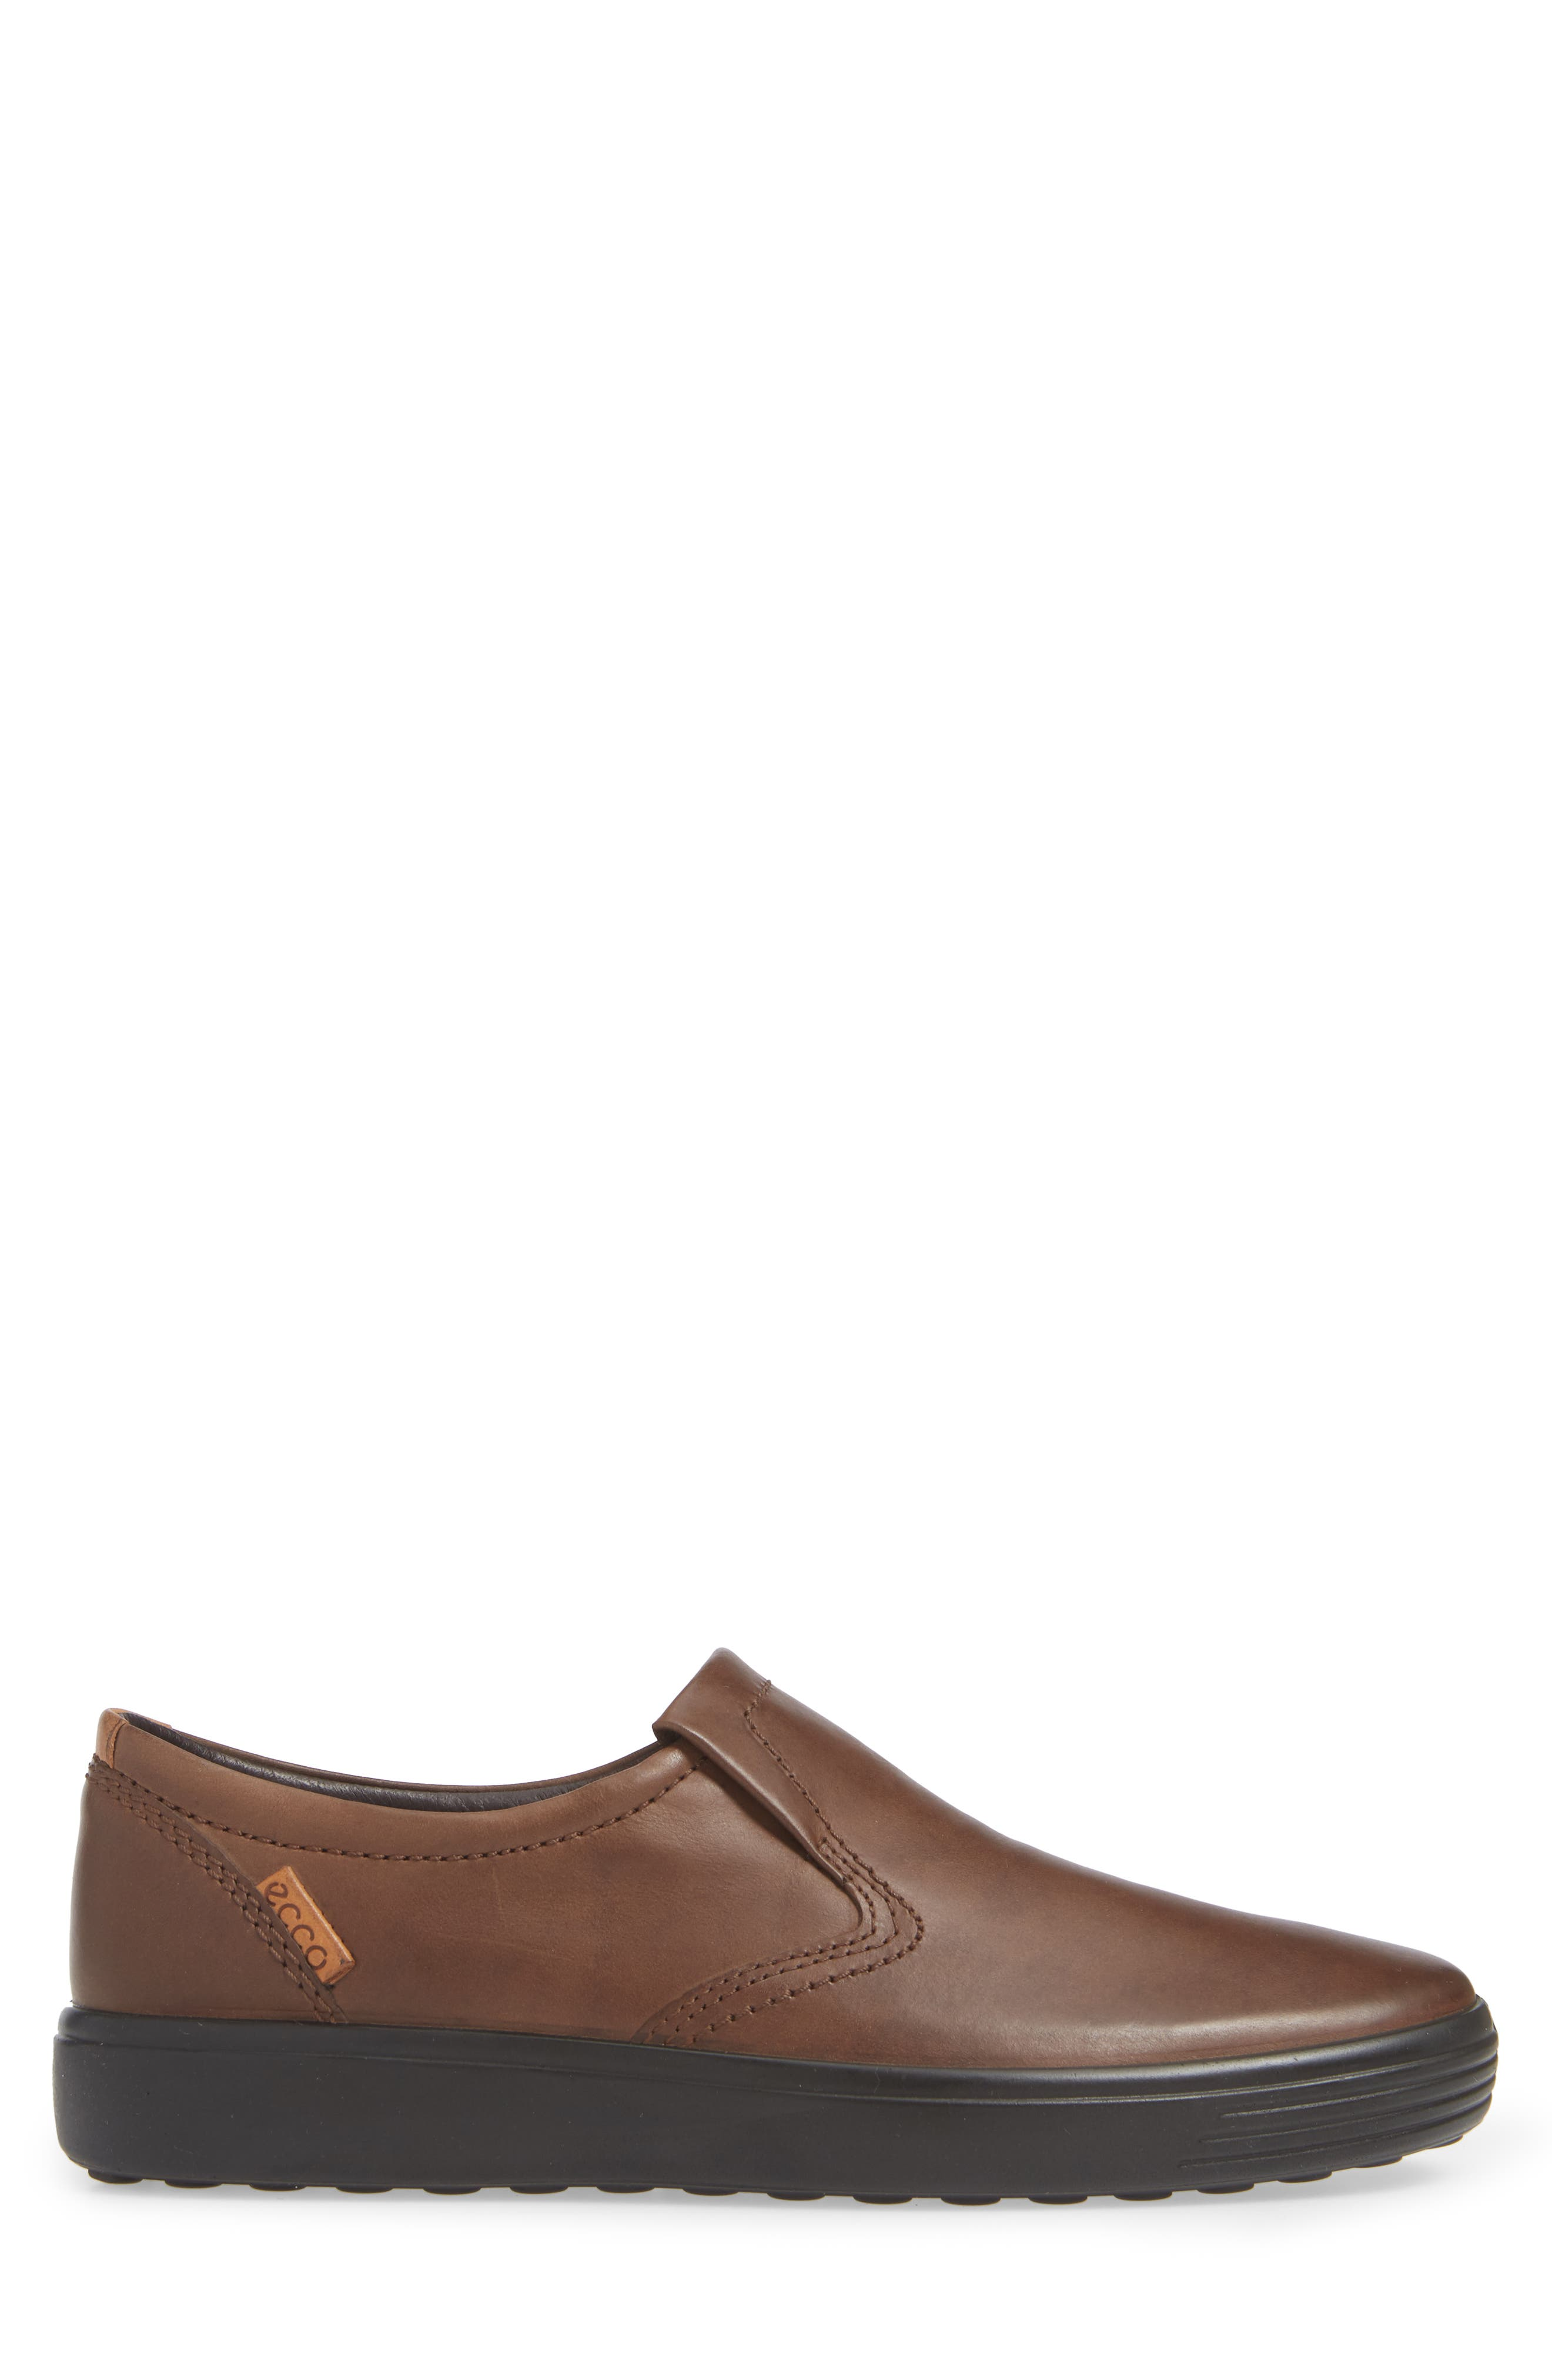 'Soft 7' Slip-On,                             Alternate thumbnail 3, color,                             BROWN LEATHER